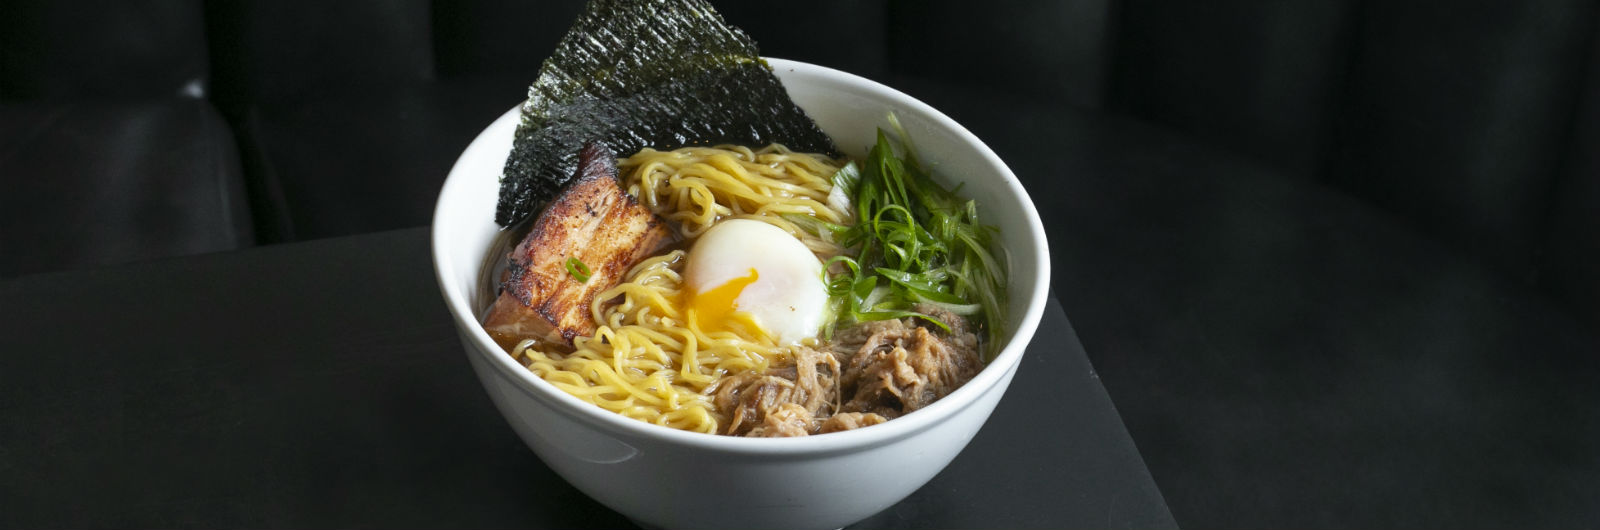 Deconstructing David Chang's Momofuku Ramen Recipe